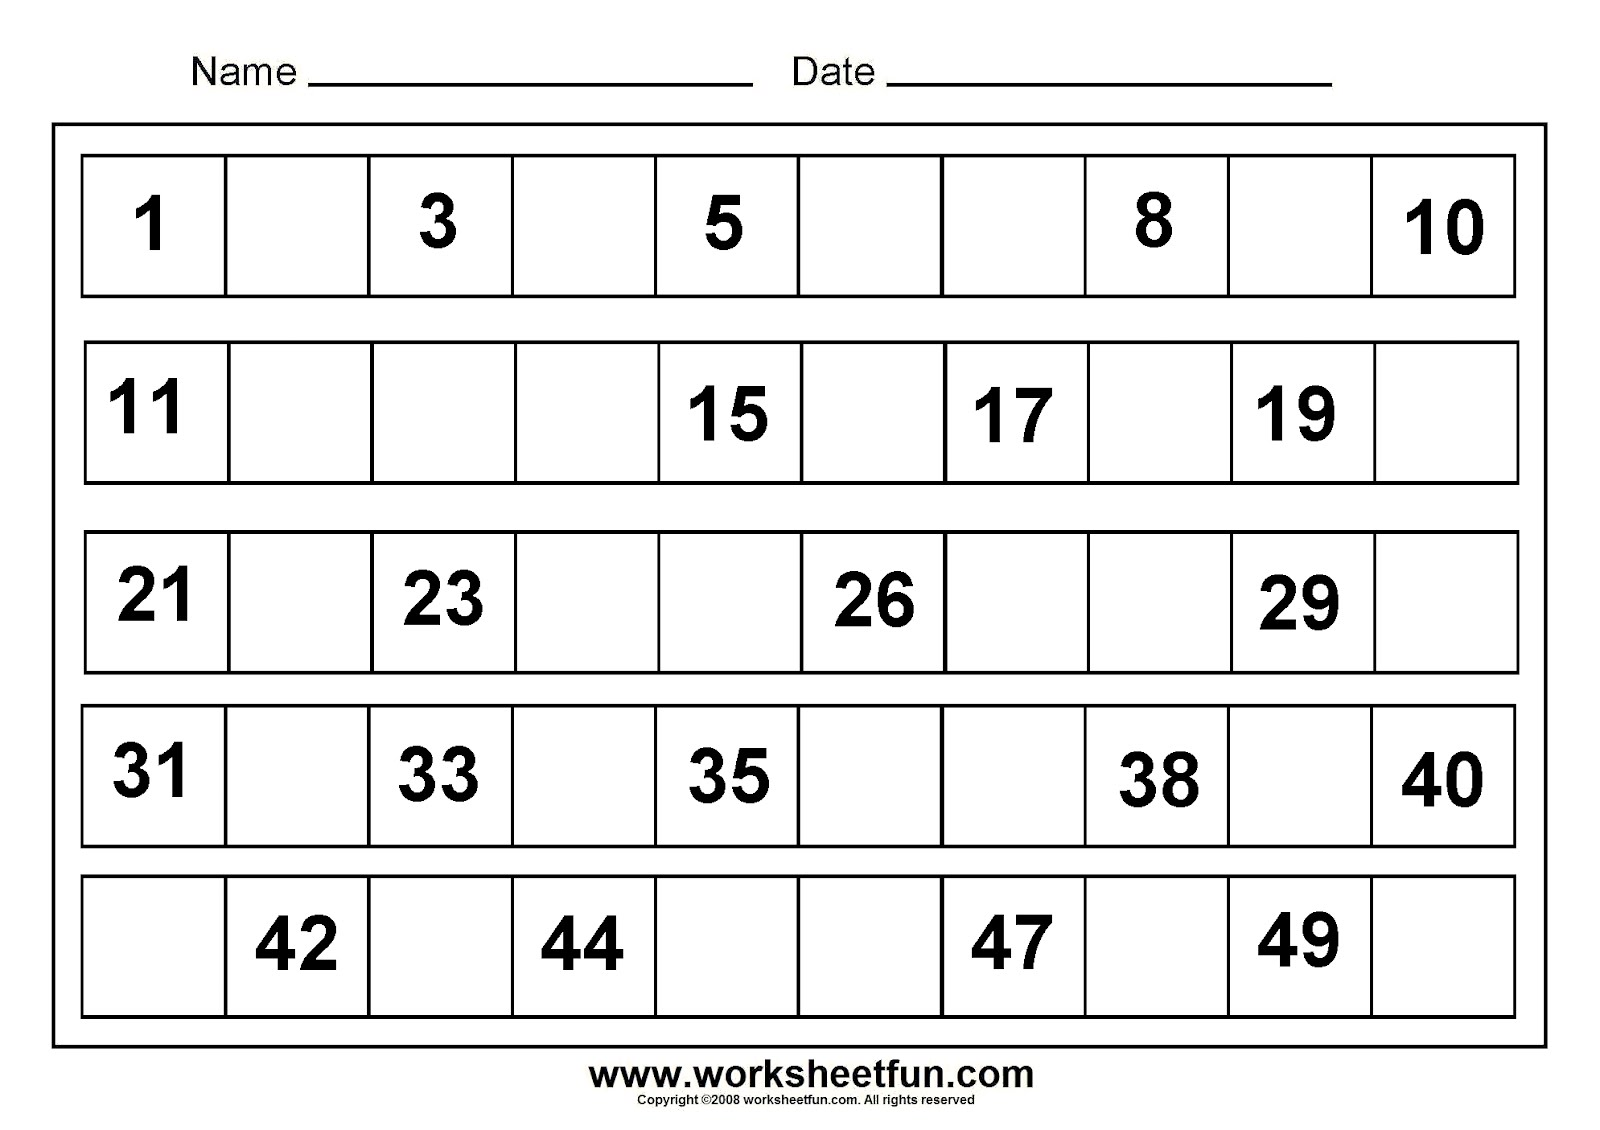 Number Fill In Practice